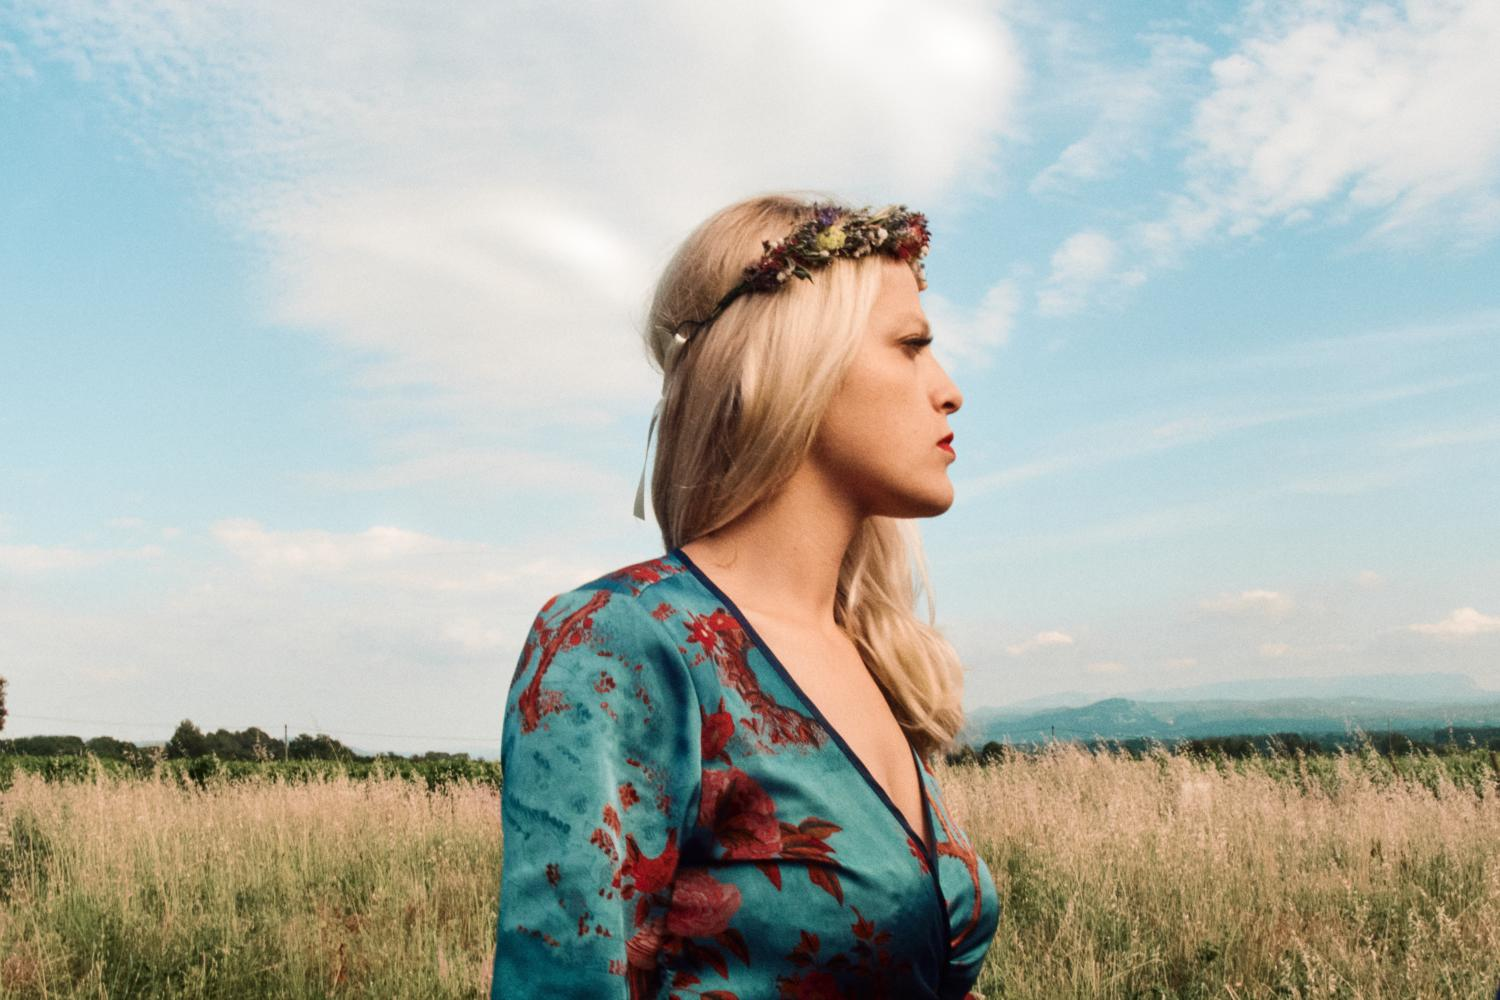 A bridesmaid with floral head piece looks pensively in a field in France